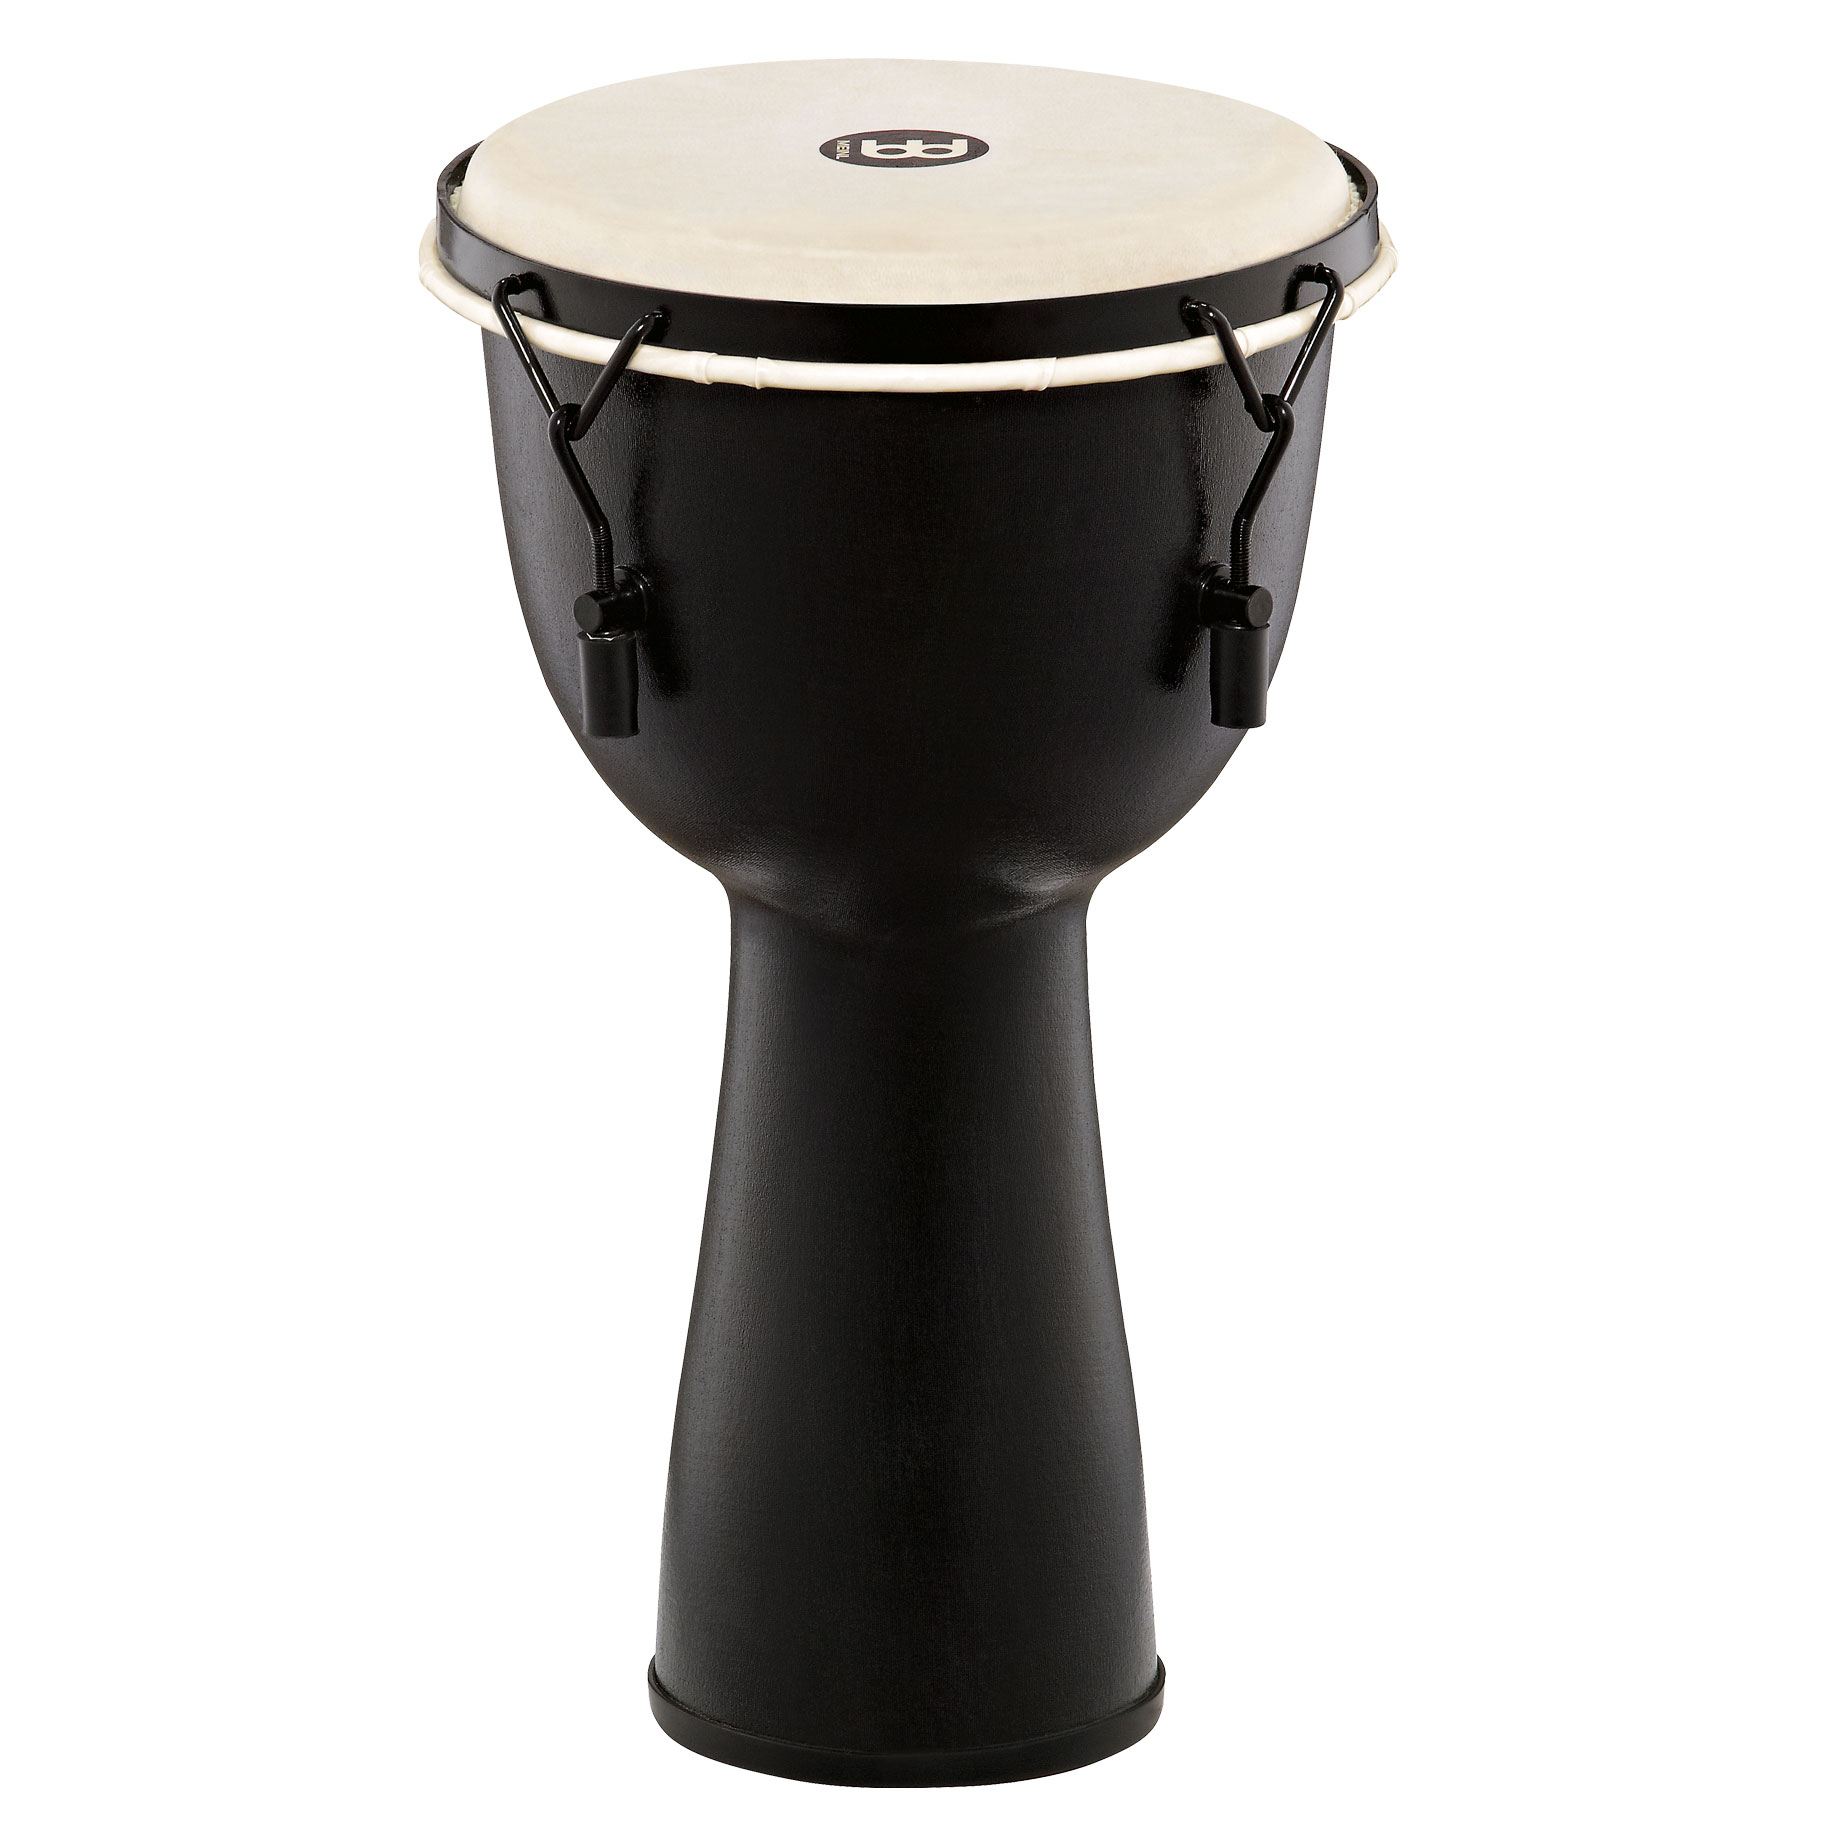 "Meinl 10"" Mechanically-Tuned Fiberglass Djembe with Synthetic Head in Black"